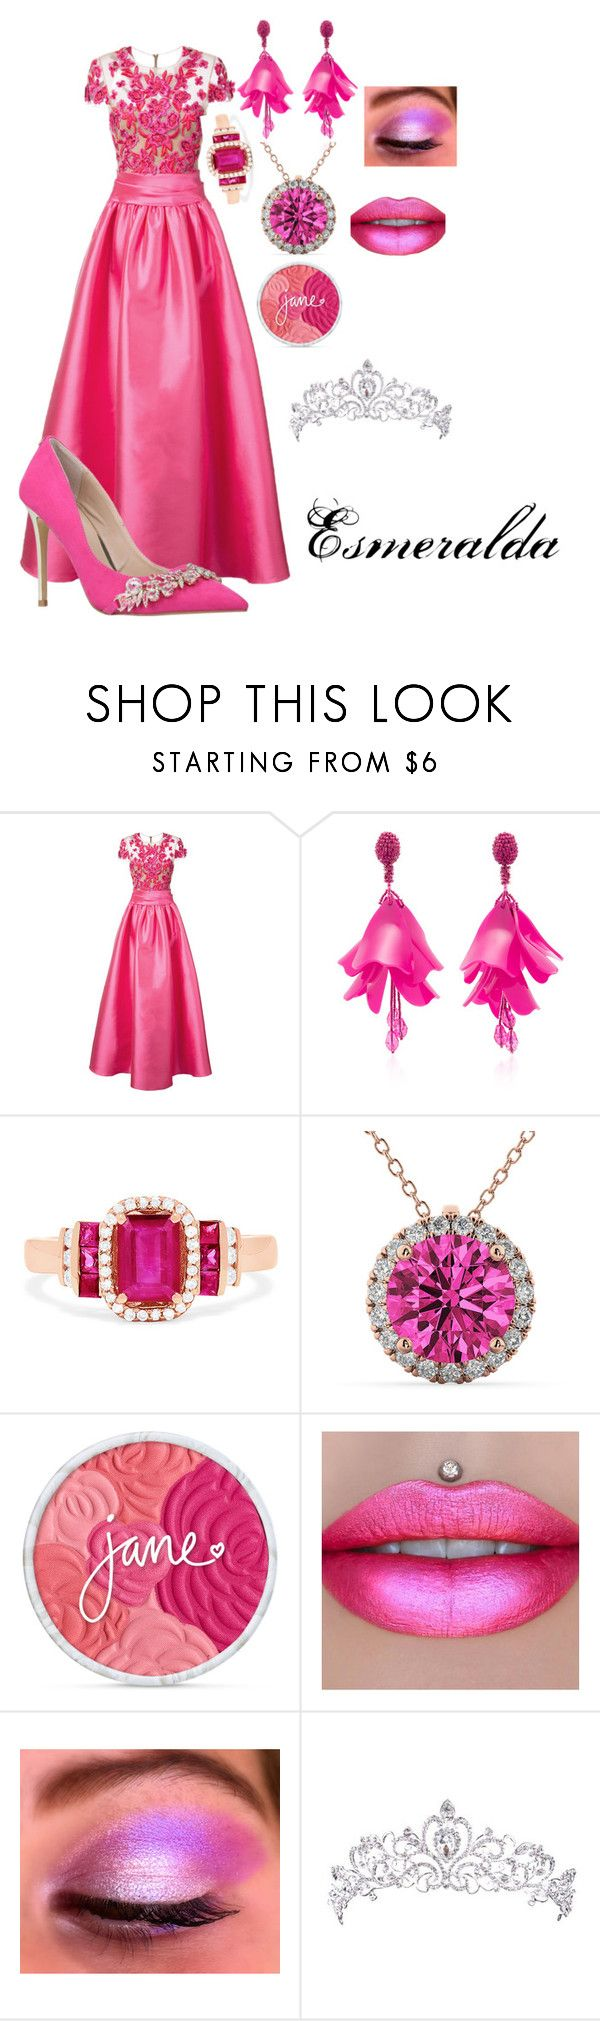 """Esmeralda's Makeover - The Selection of the Queen"" by gryffindormermaid ❤ liked on Polyvore featuring Notte by Marchesa, Oscar de la Renta, Effy Jewelry, Allurez, CO and Carvela"